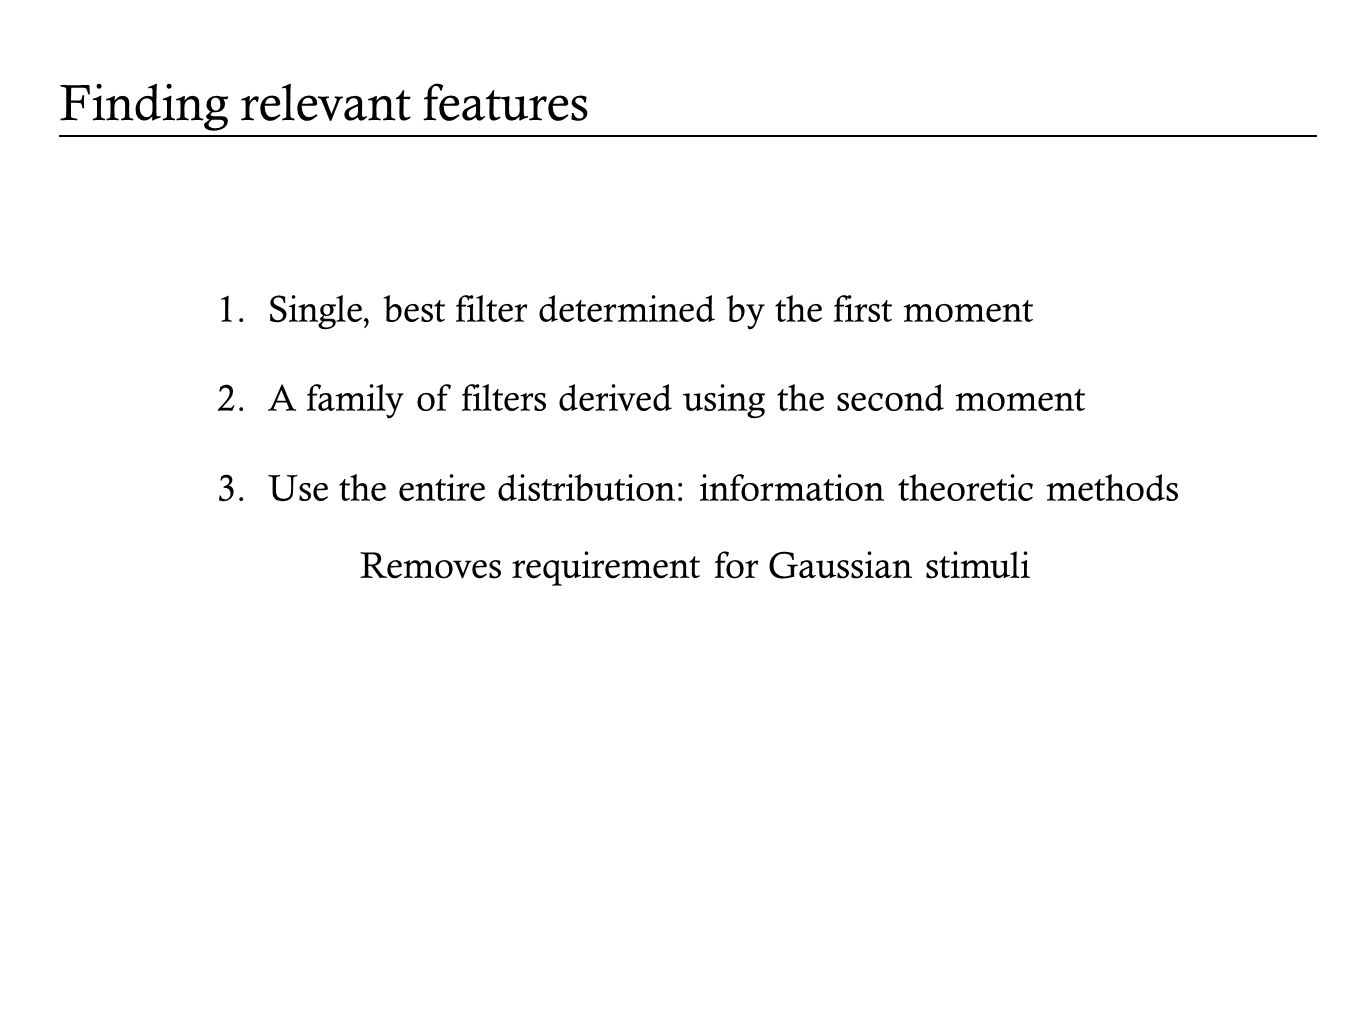 1.Single, best filter determined by the first moment 2.A family of filters derived using the second moment 3.Use the entire distribution: information theoretic methods Removes requirement for Gaussian stimuli Finding relevant features